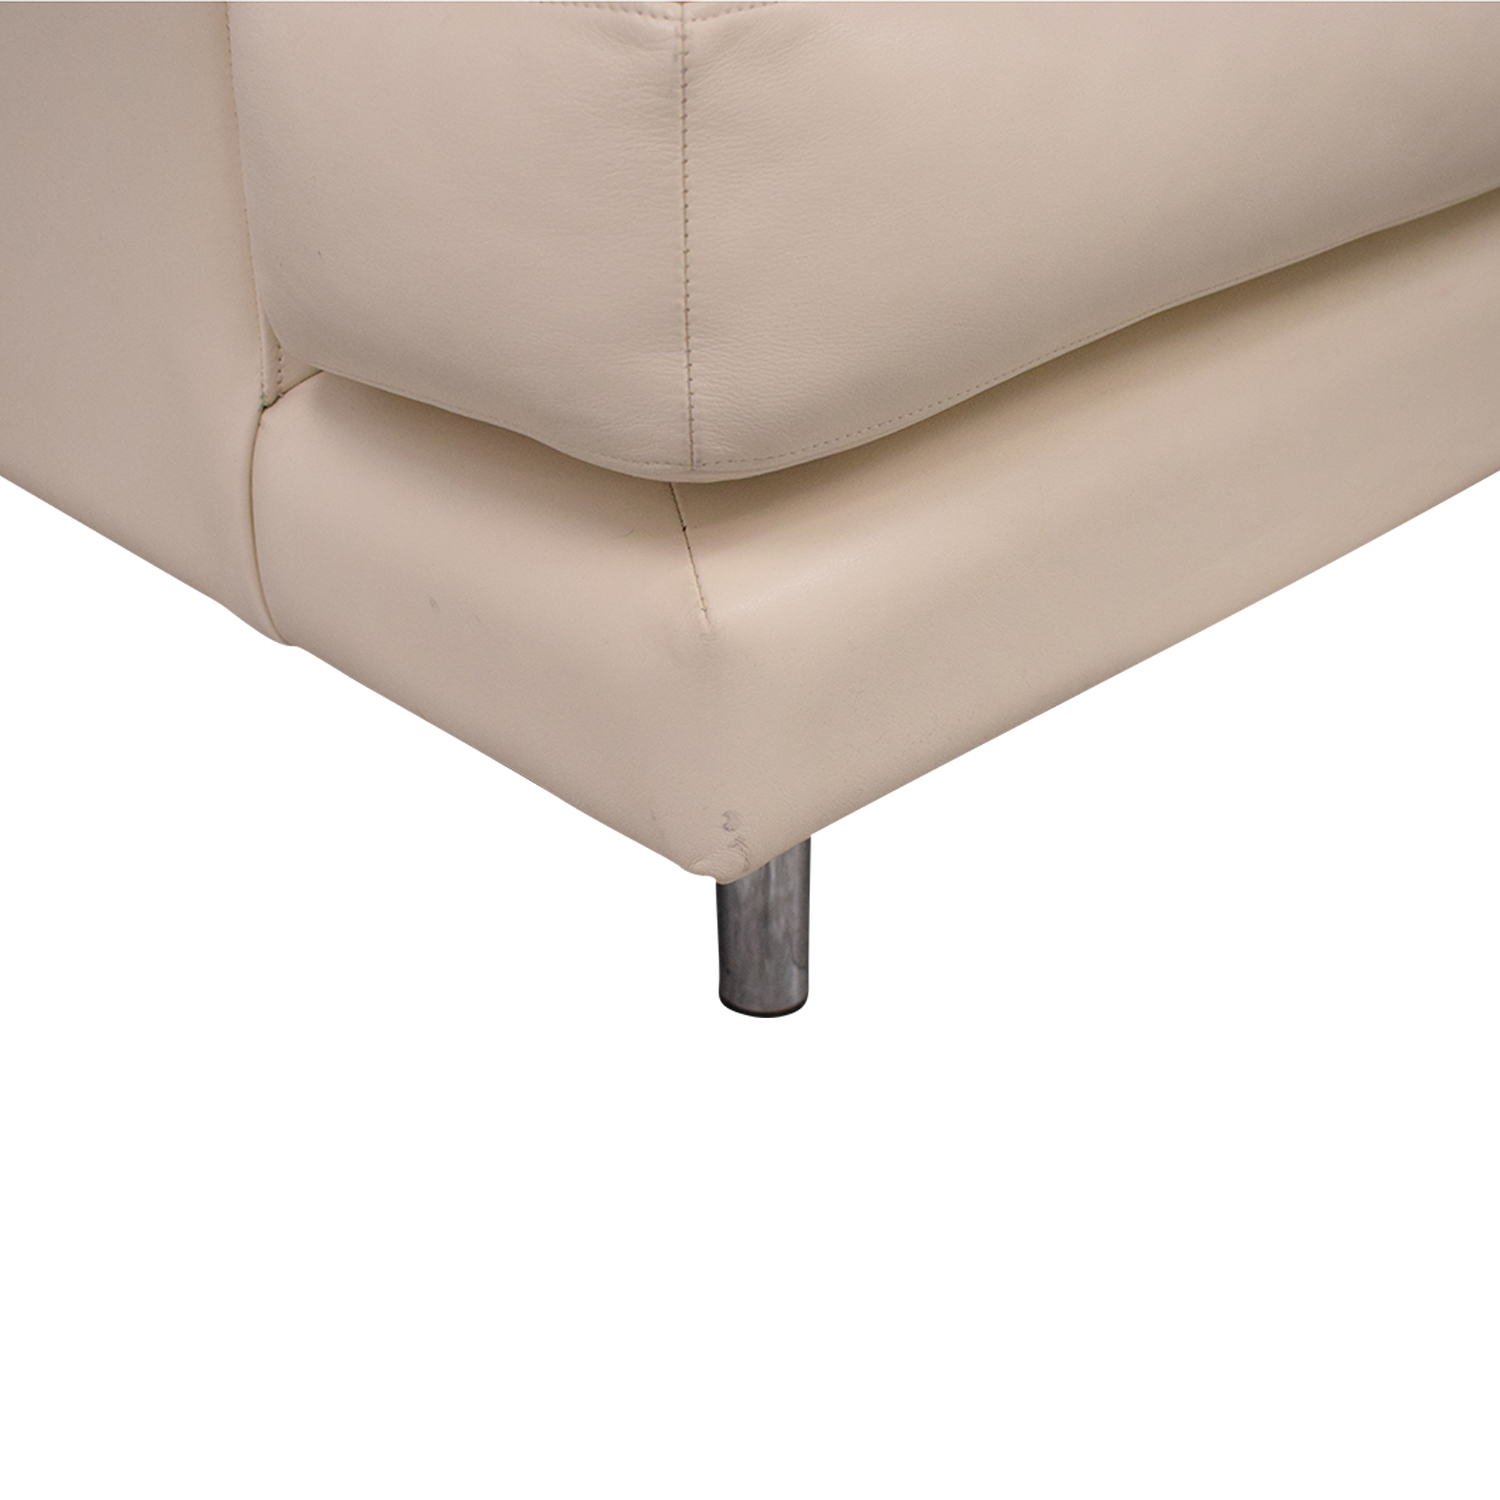 Knoll Knoll D'Urso Residential Lounge Chair off white